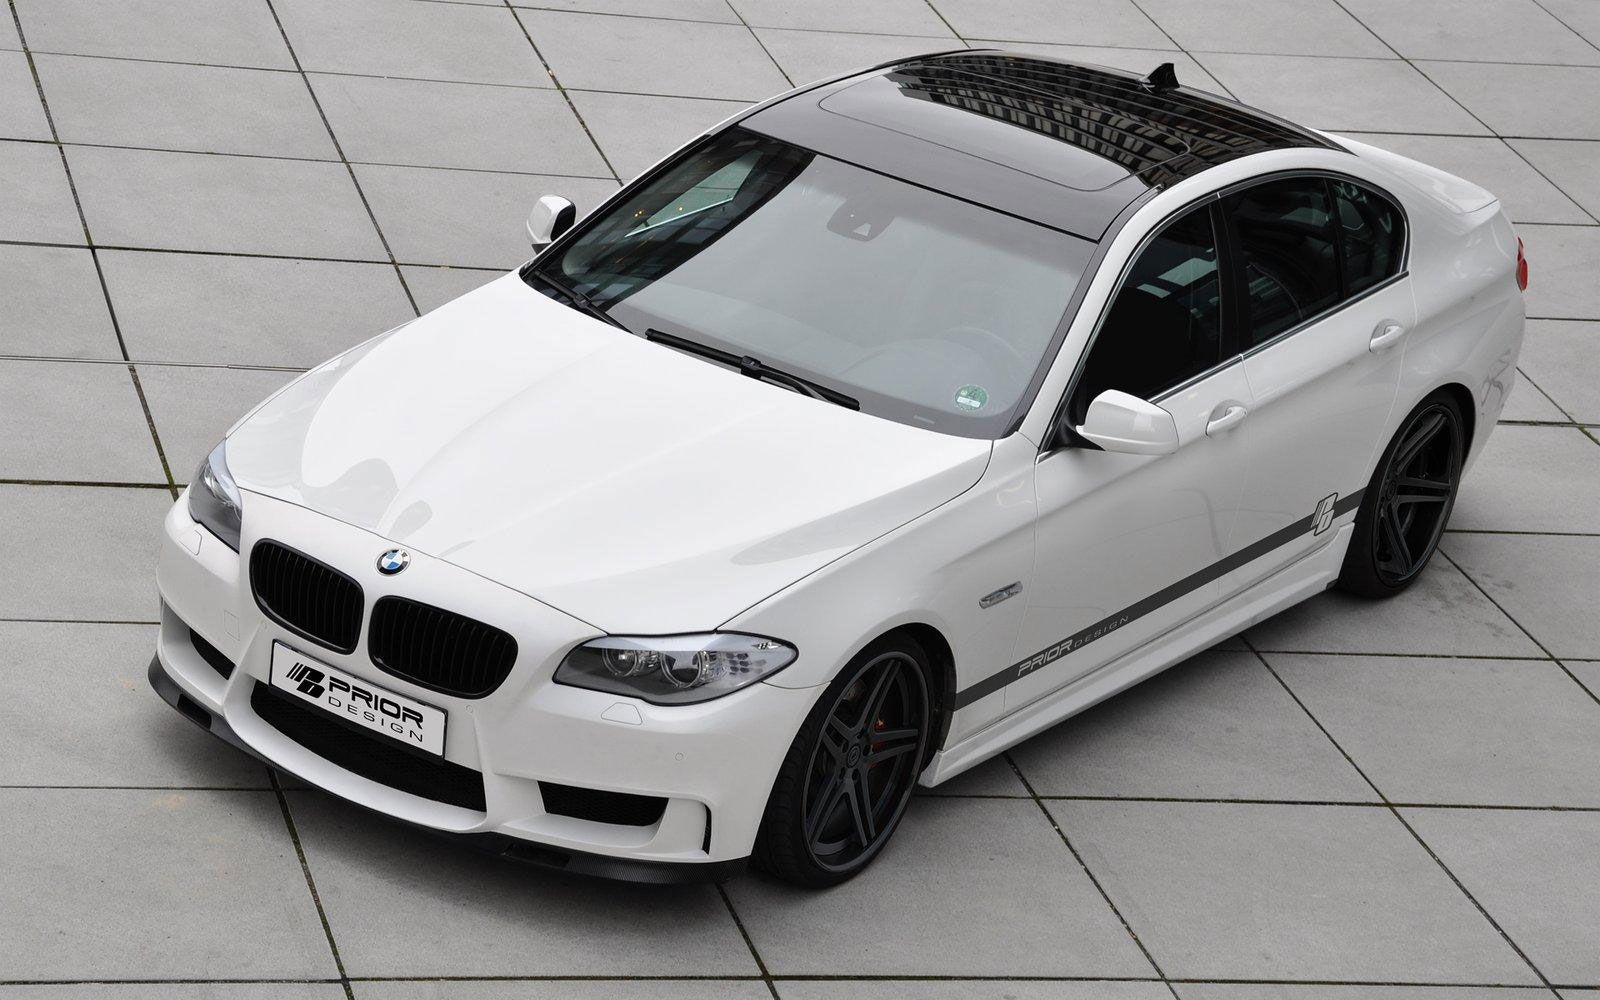 hight resolution of bmw 5 series white bmw 5 series wallpaper hd wallpapers